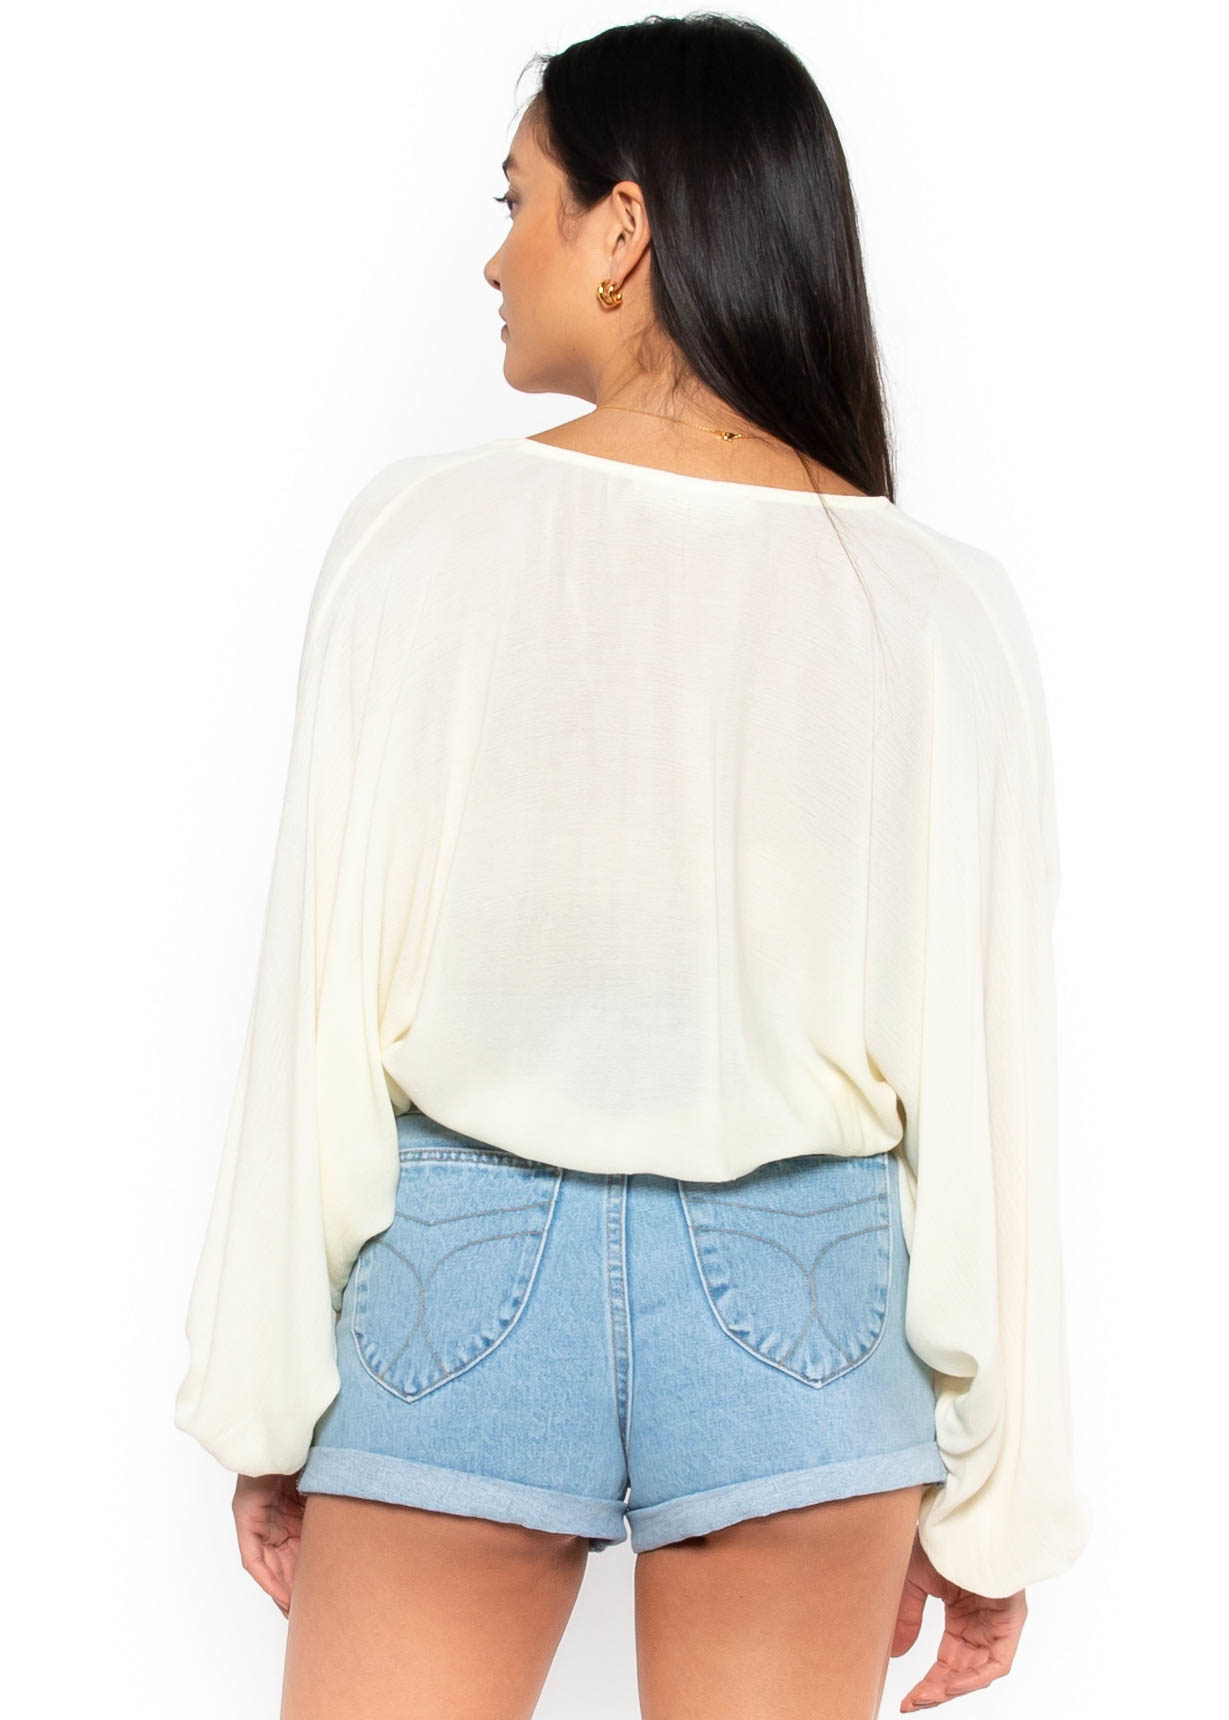 INSTANT ATTRACTION IVORY BLOUSE